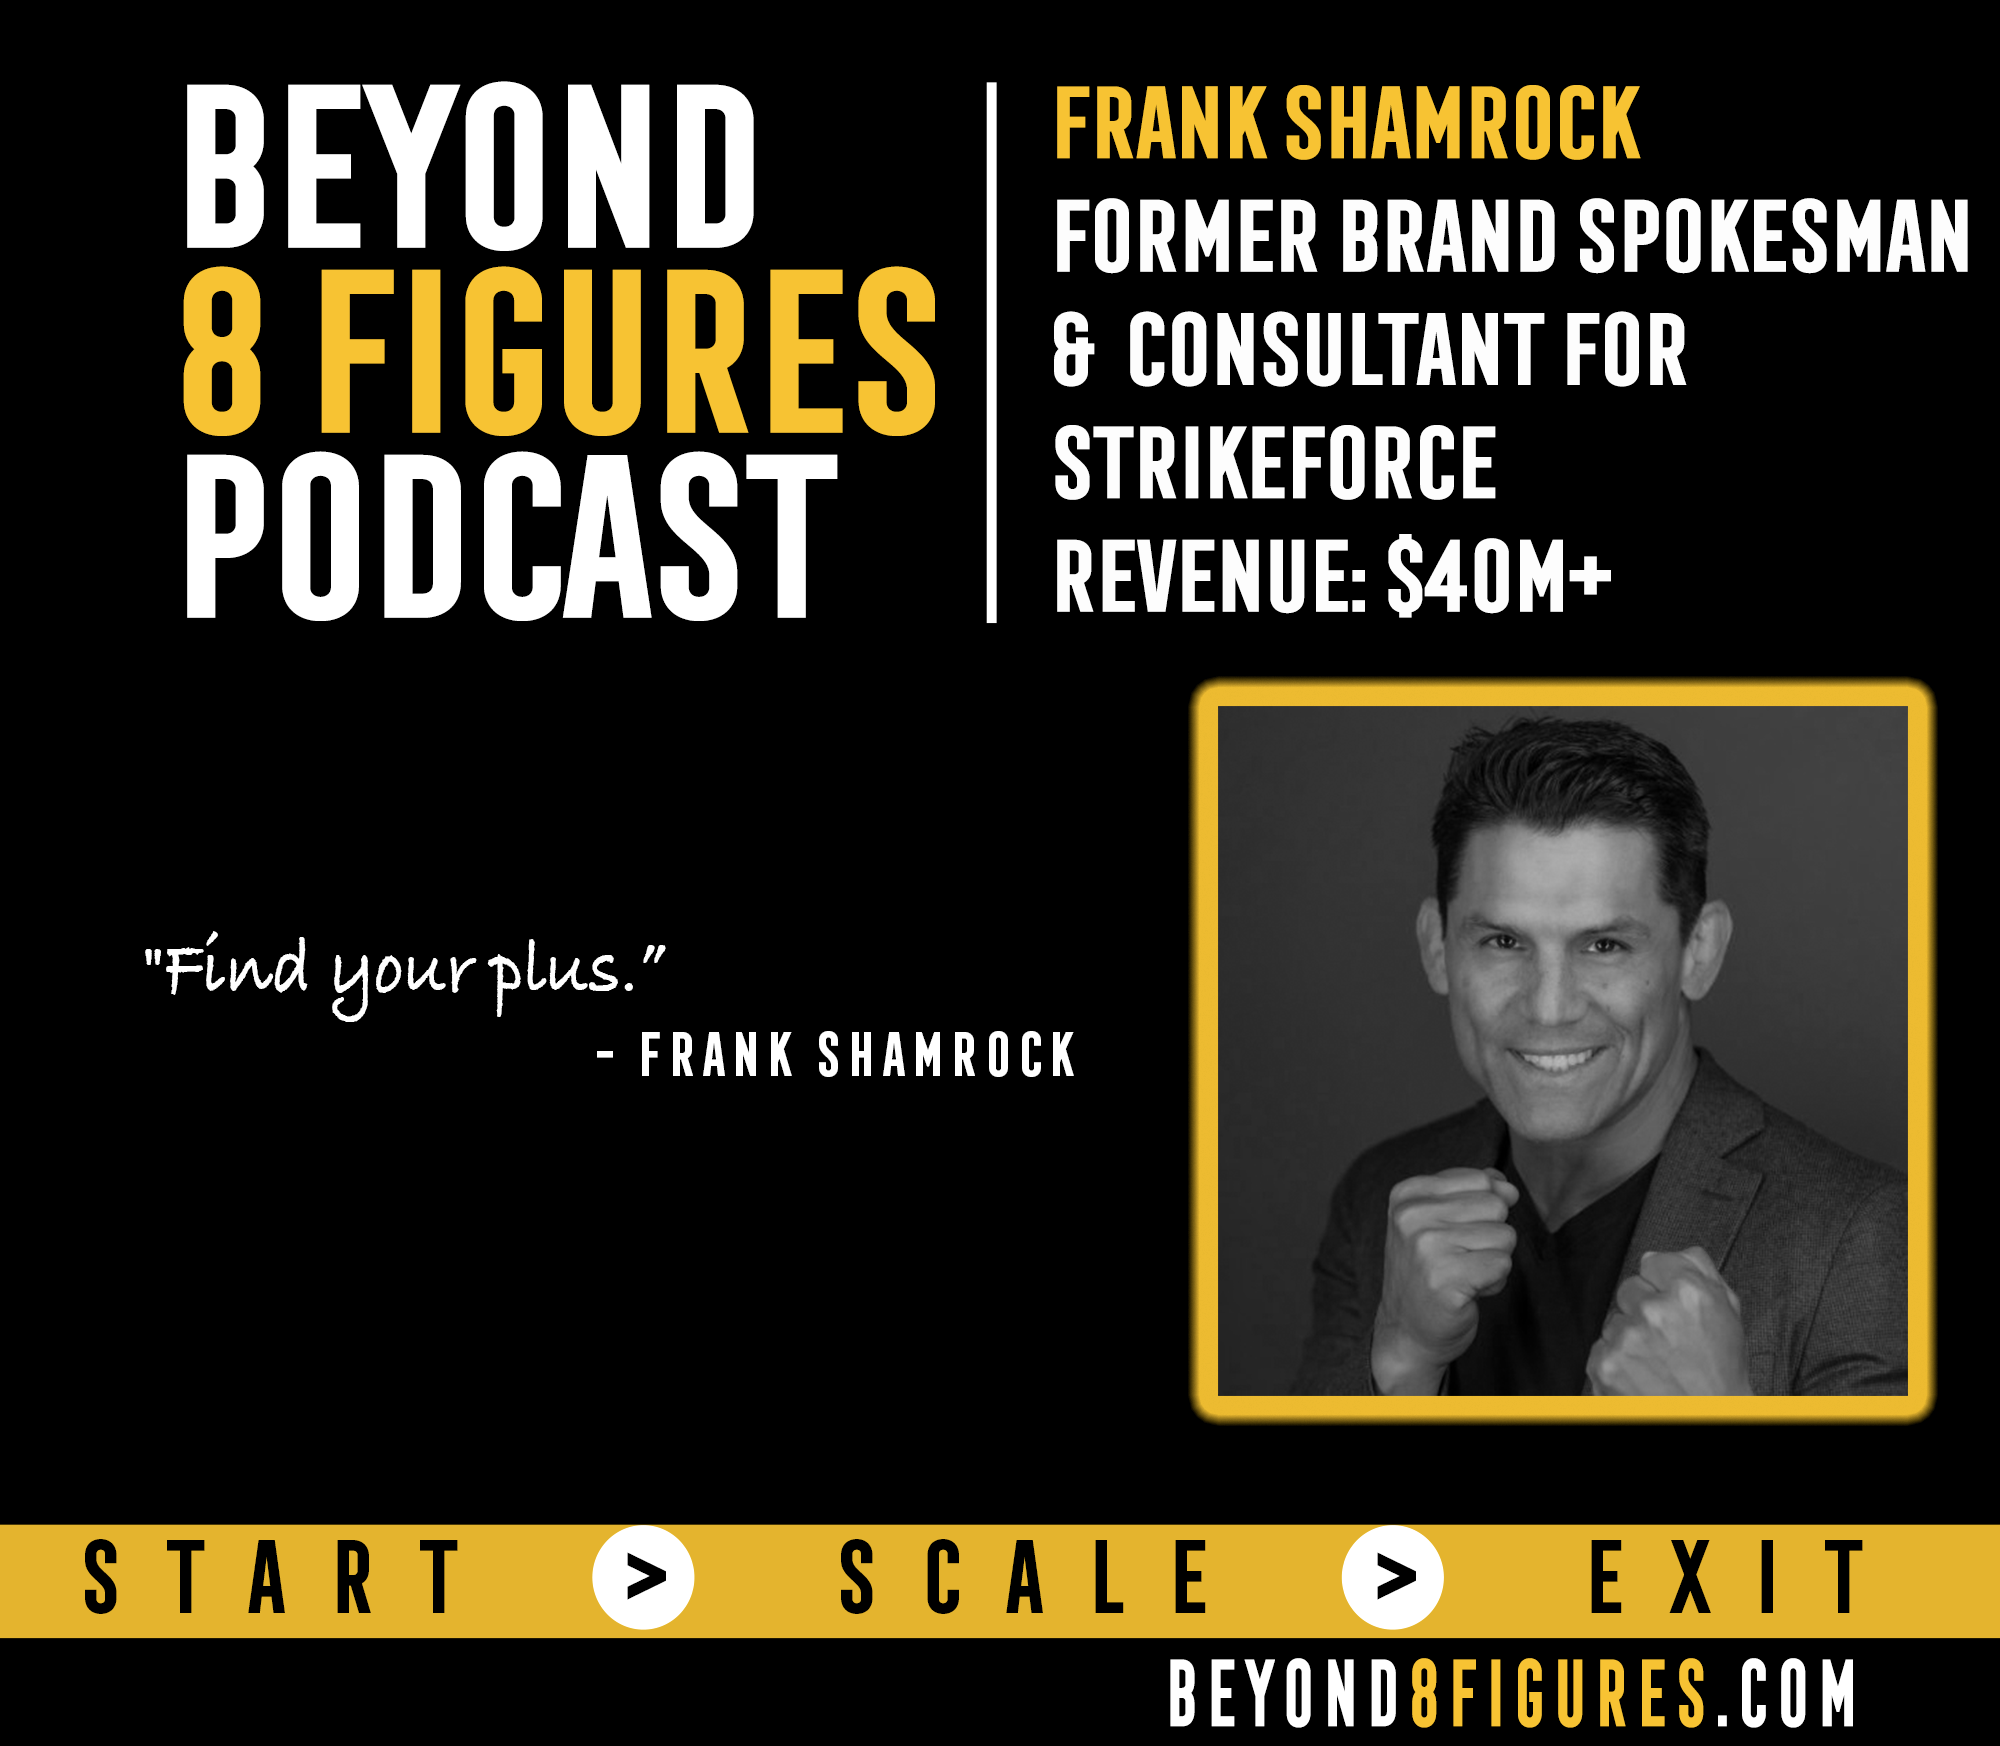 Frank Shamrock Exited Strike Force for $40M